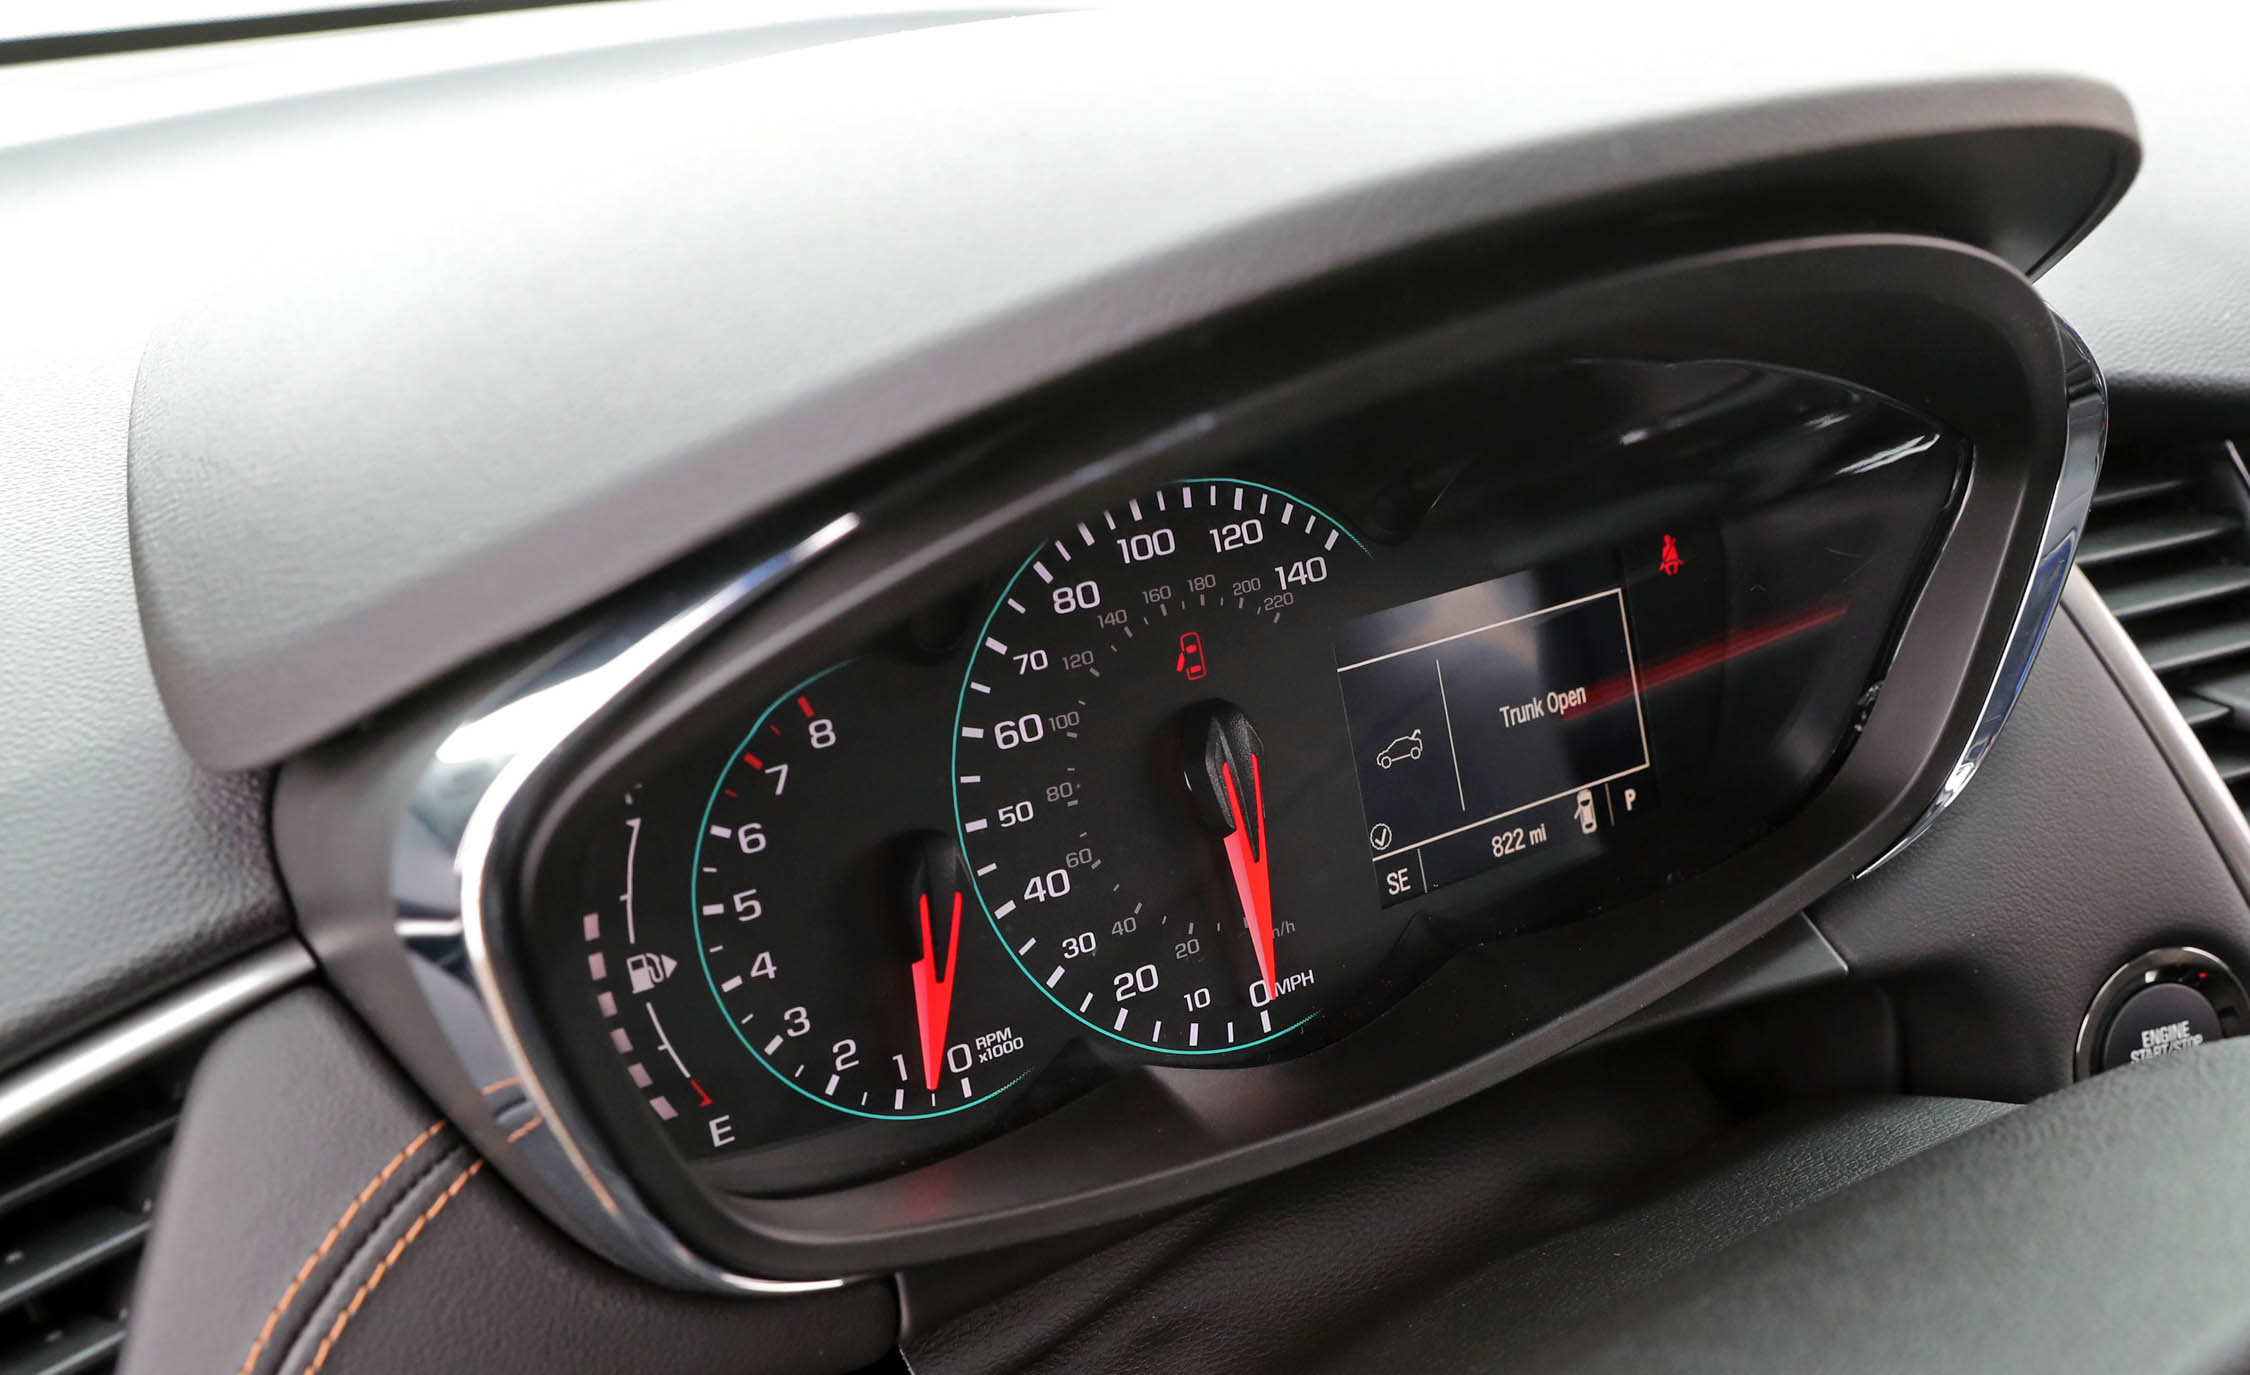 2017 Chevrolet Trax Interior View Speedometer (View 17 of 47)